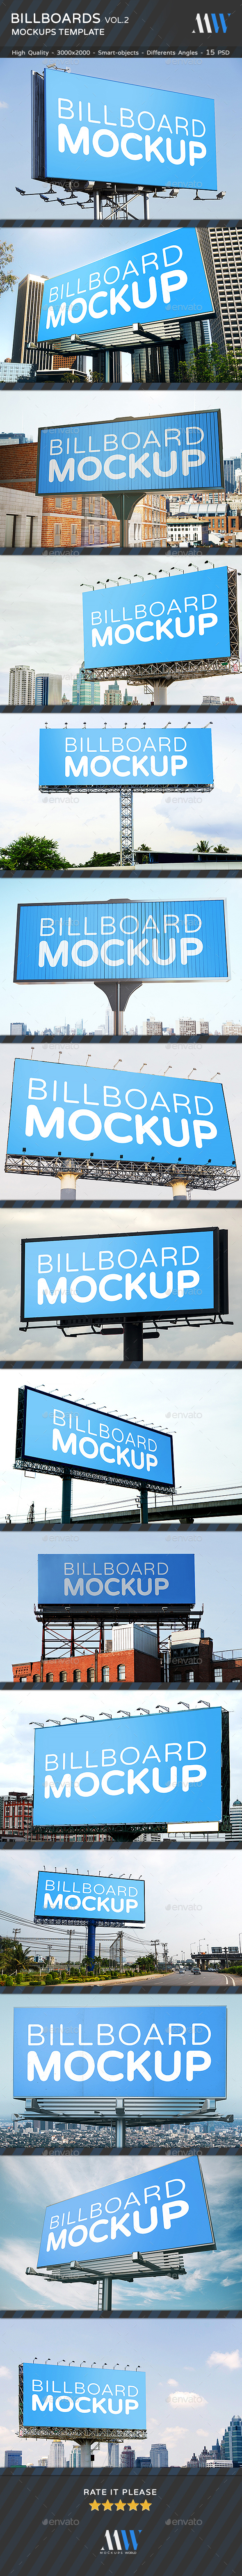 GraphicRiver Billboards Mock-ups Vol.2 20688027